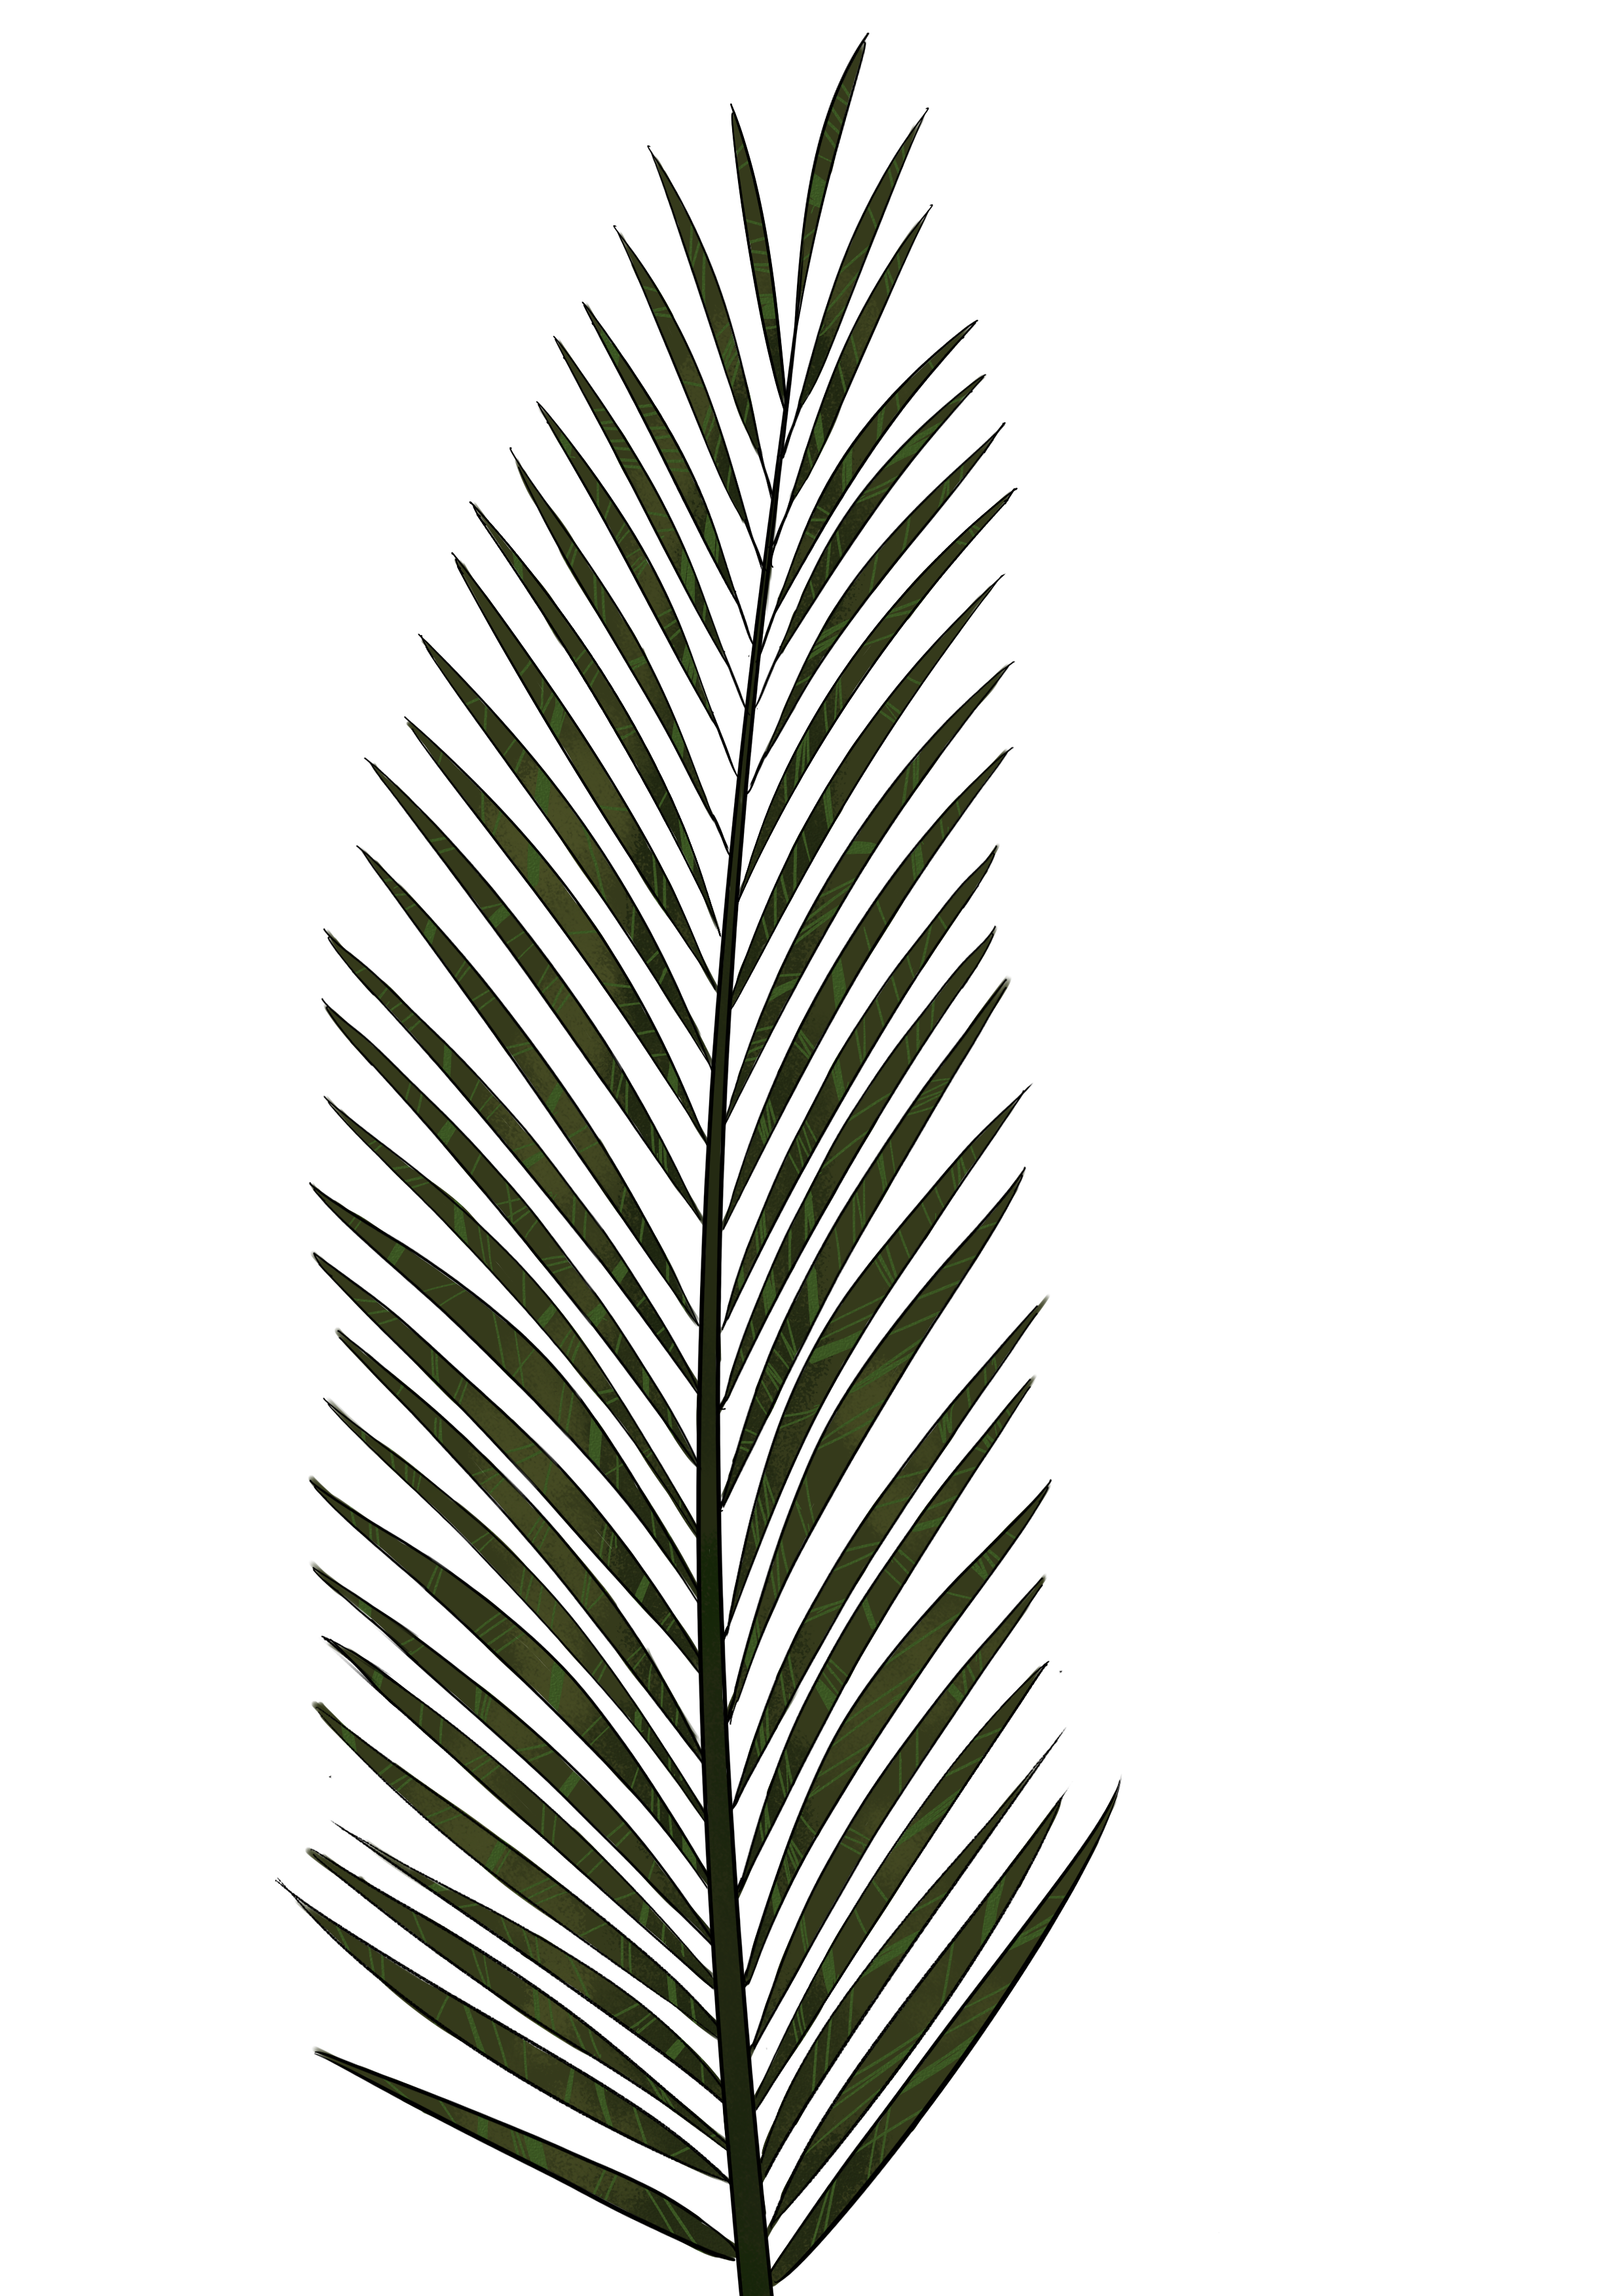 Palm tree leaf png. Drawing at getdrawings com